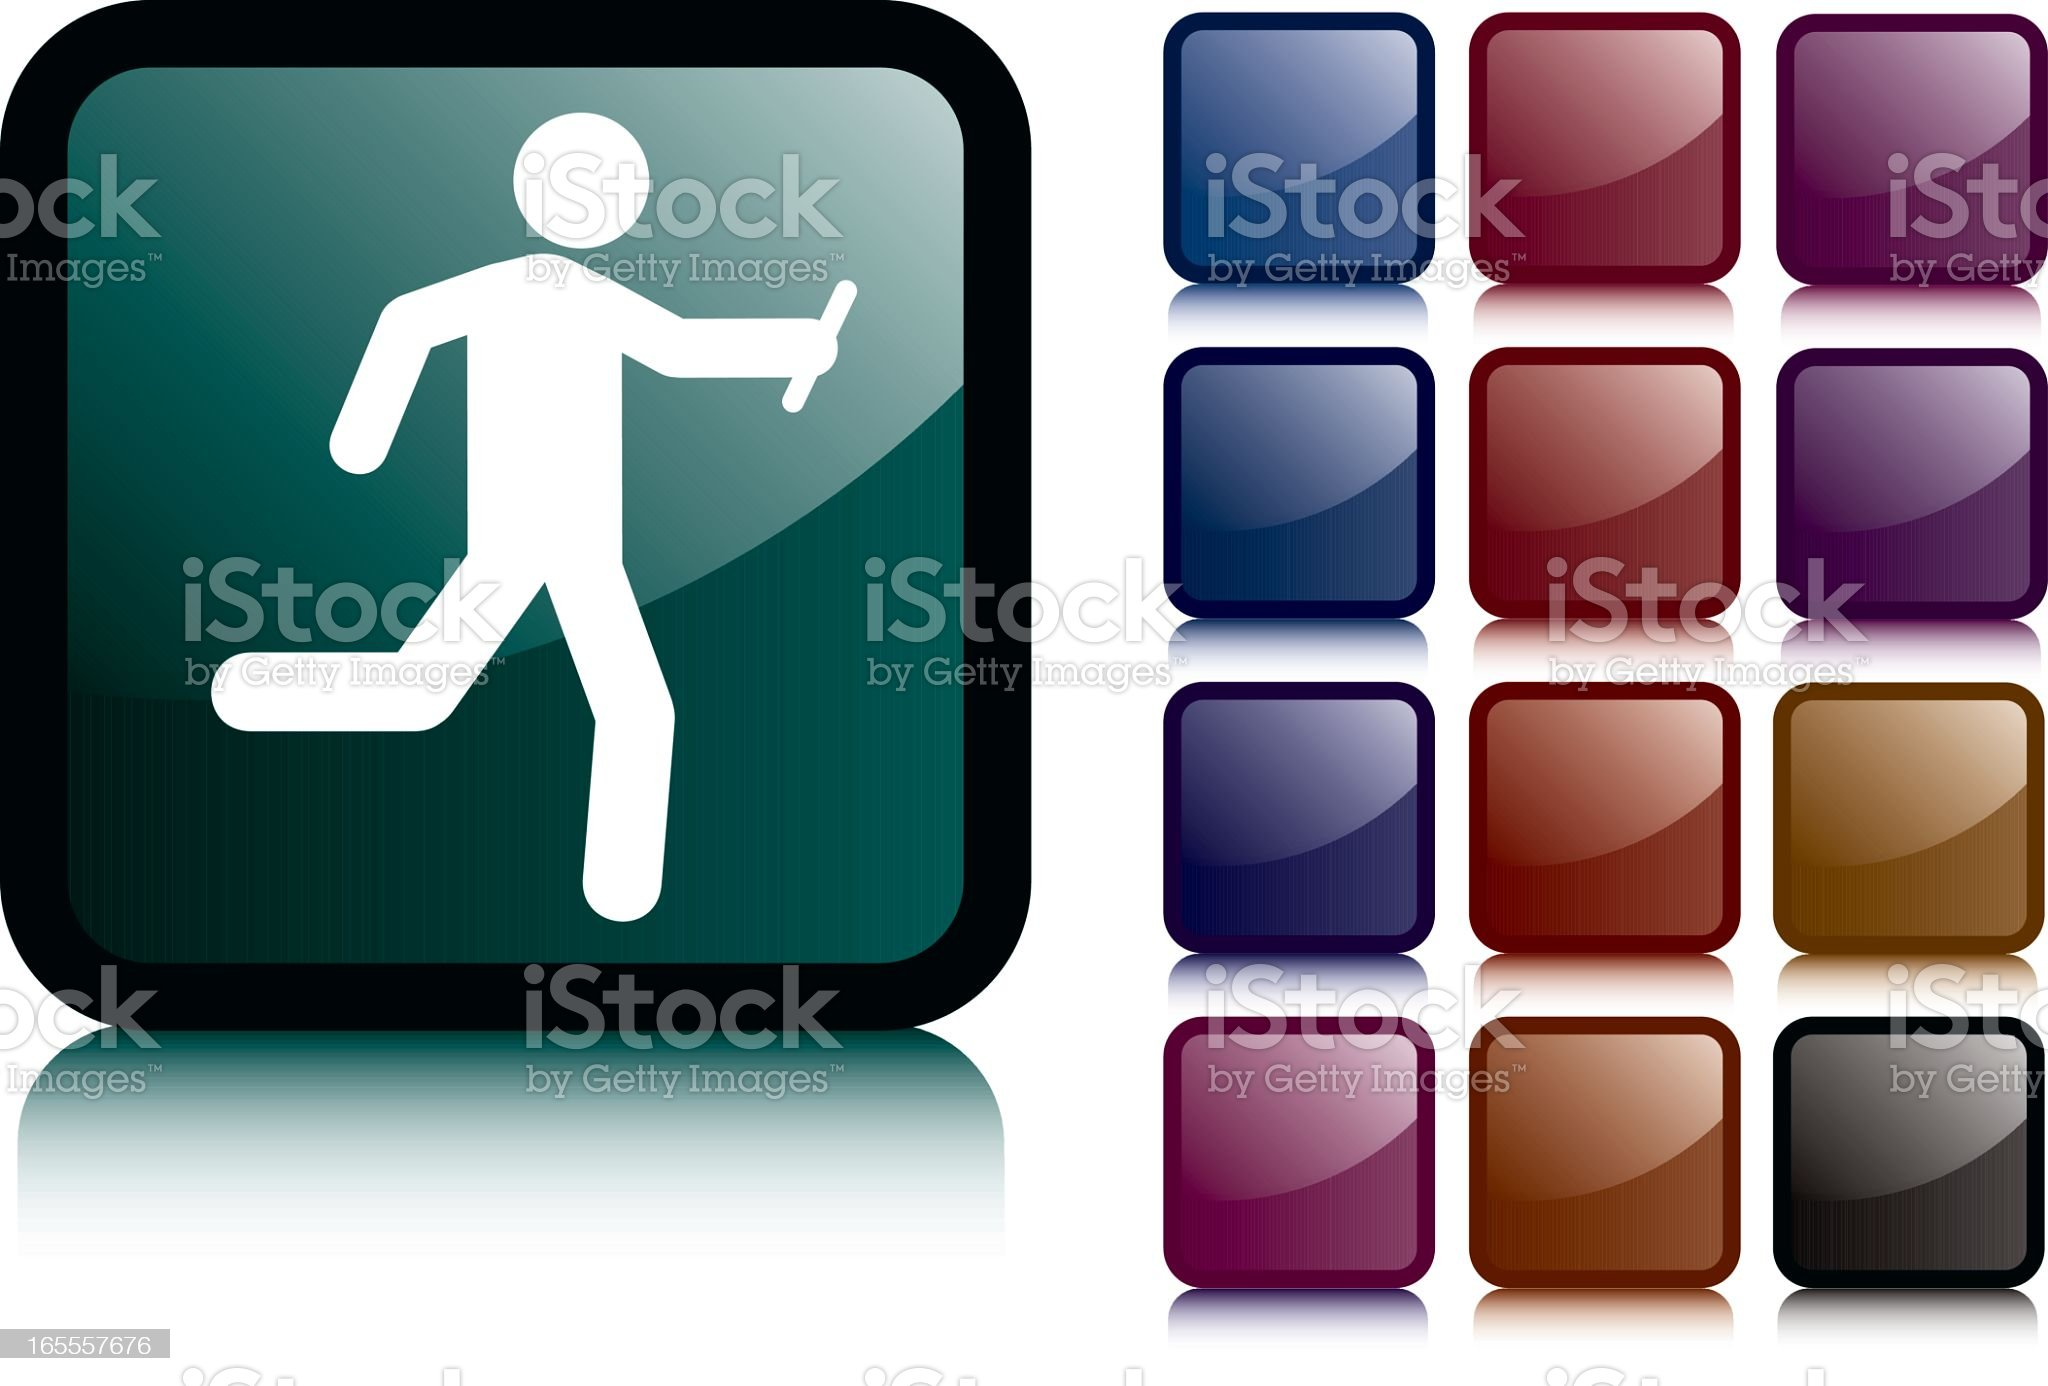 Black Relay Man Icon royalty-free stock vector art